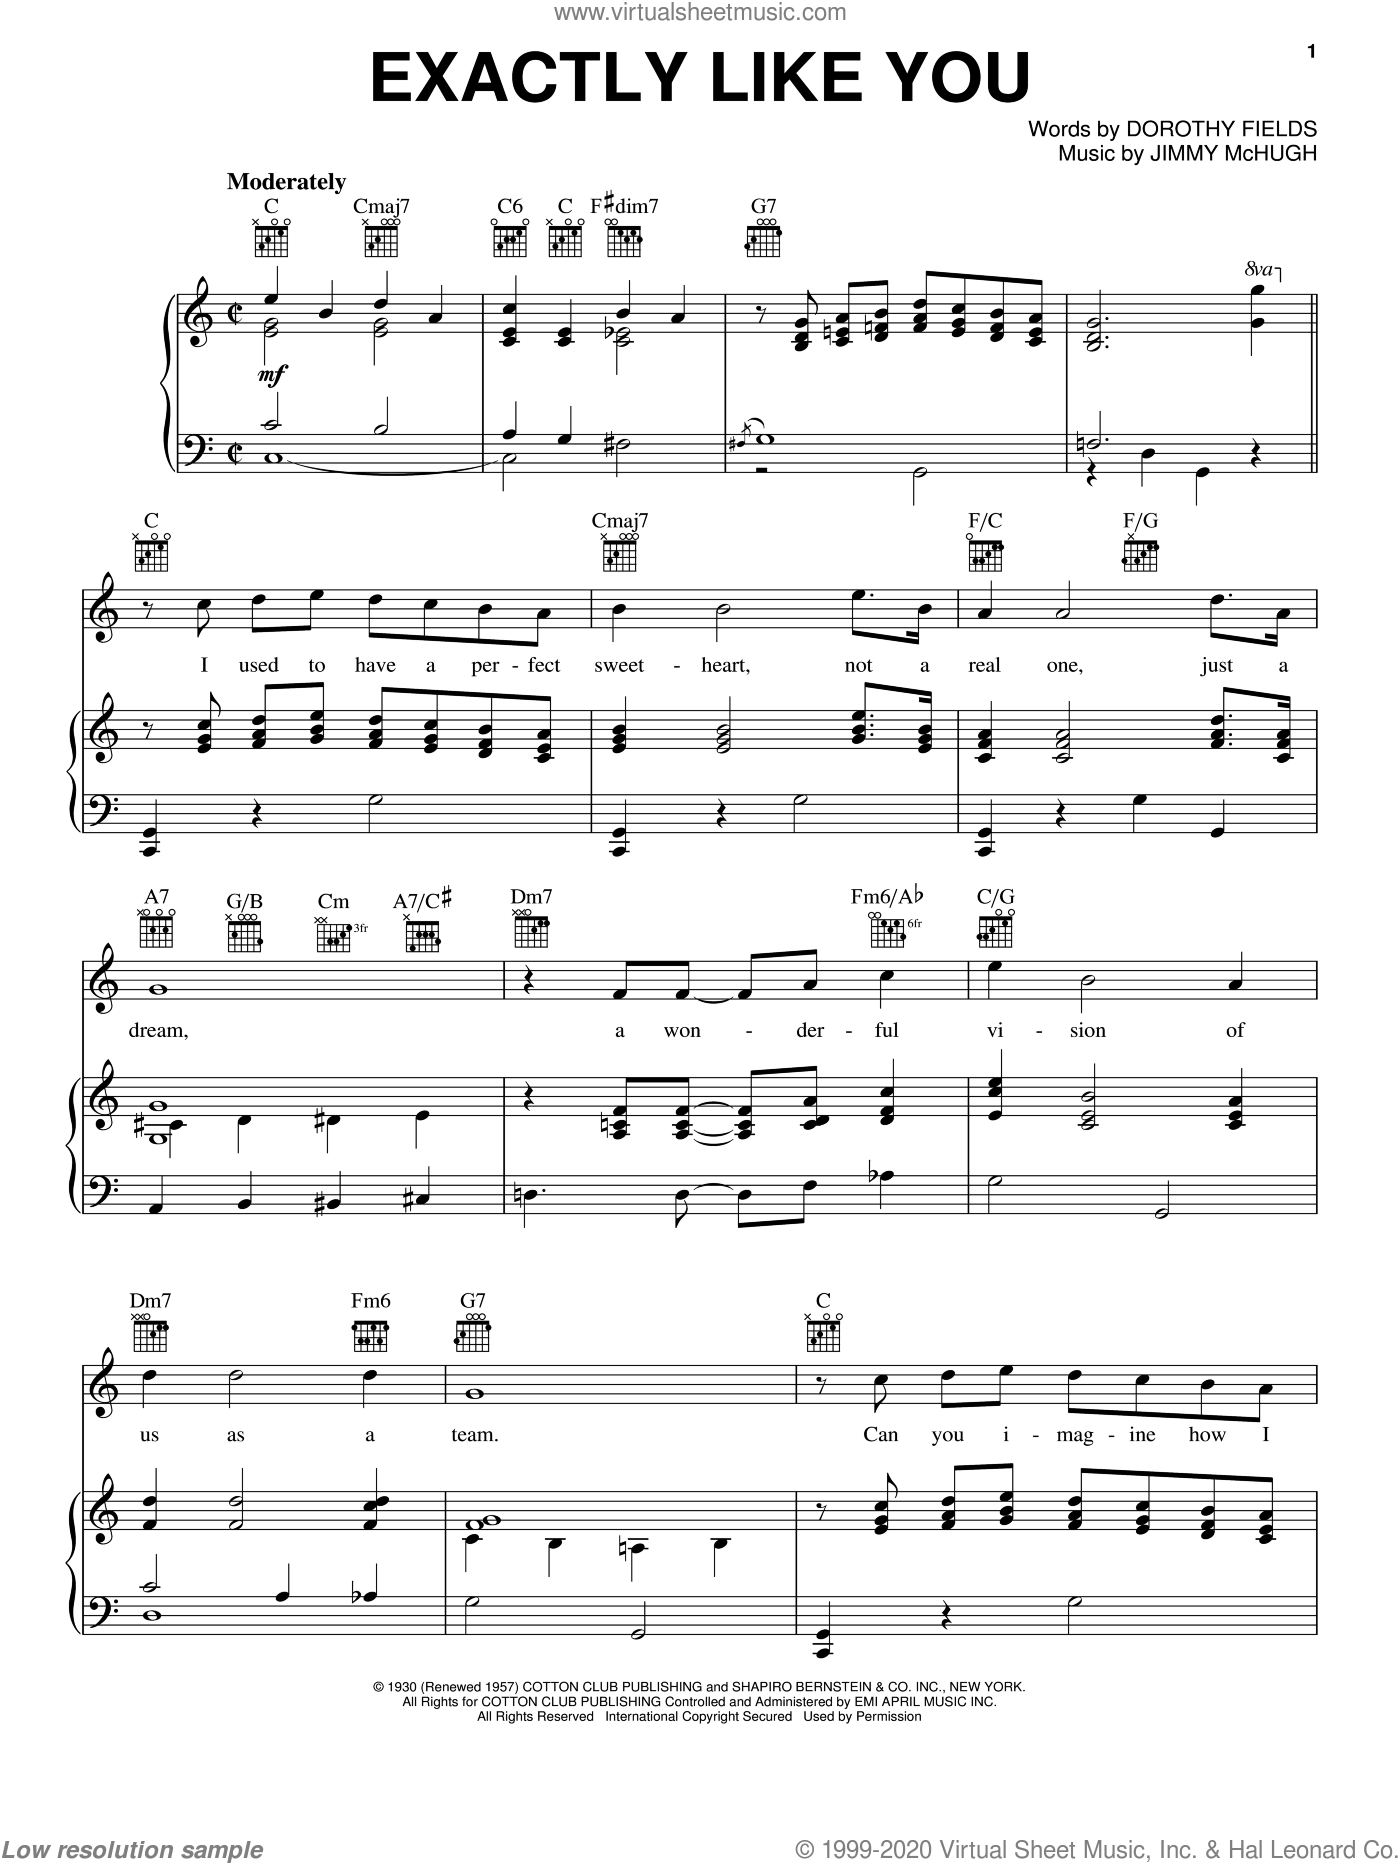 Exactly Like You sheet music for voice, piano or guitar by Jimmy McHugh